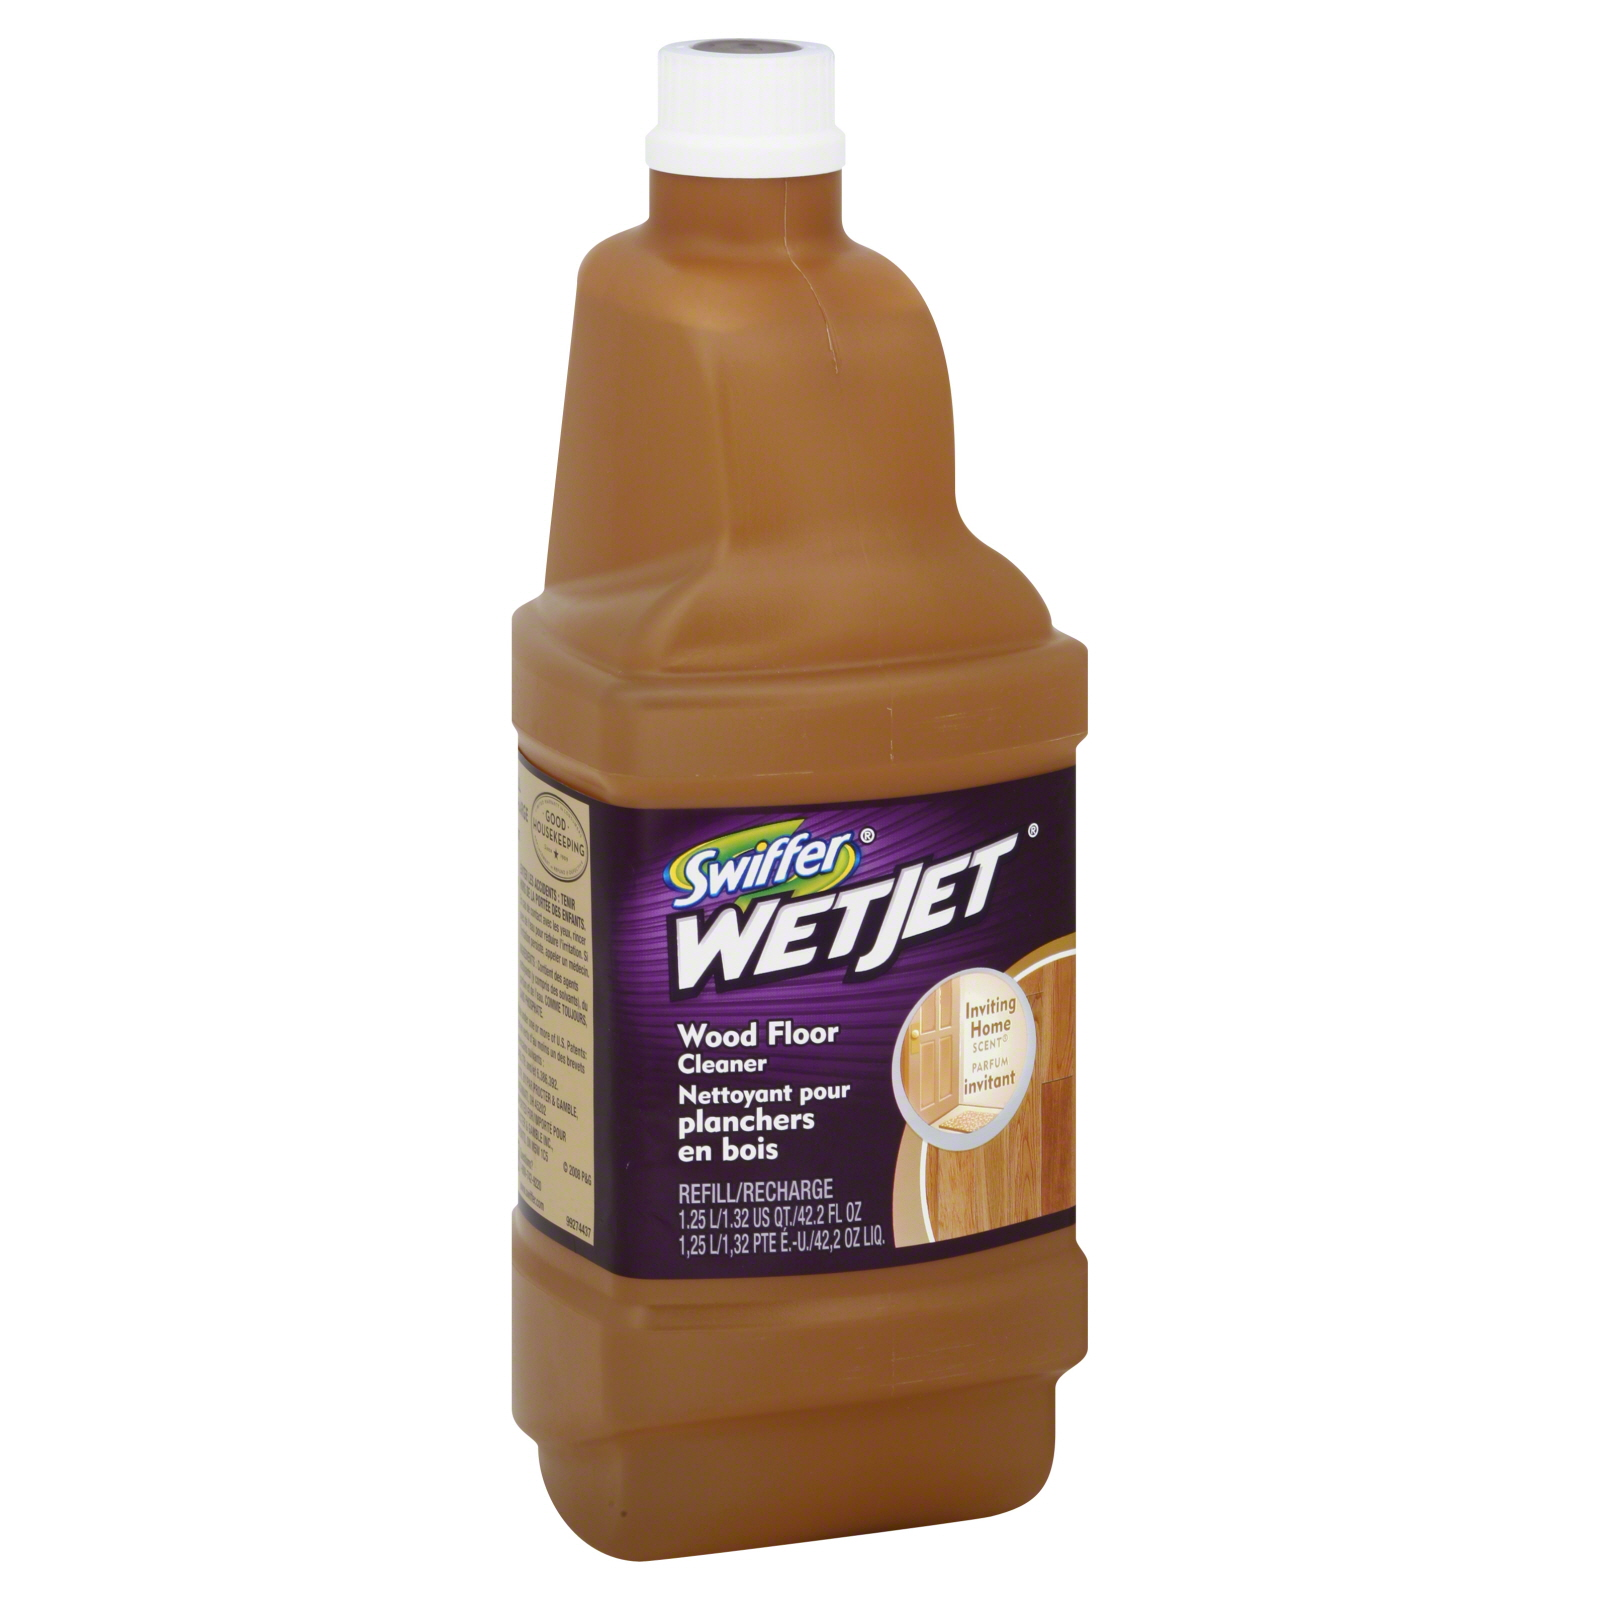 Swiffer wet jet solution wood floor cleaner refill 33 8 fl oz shop your way online shopping earn points on tools appliances electronics more